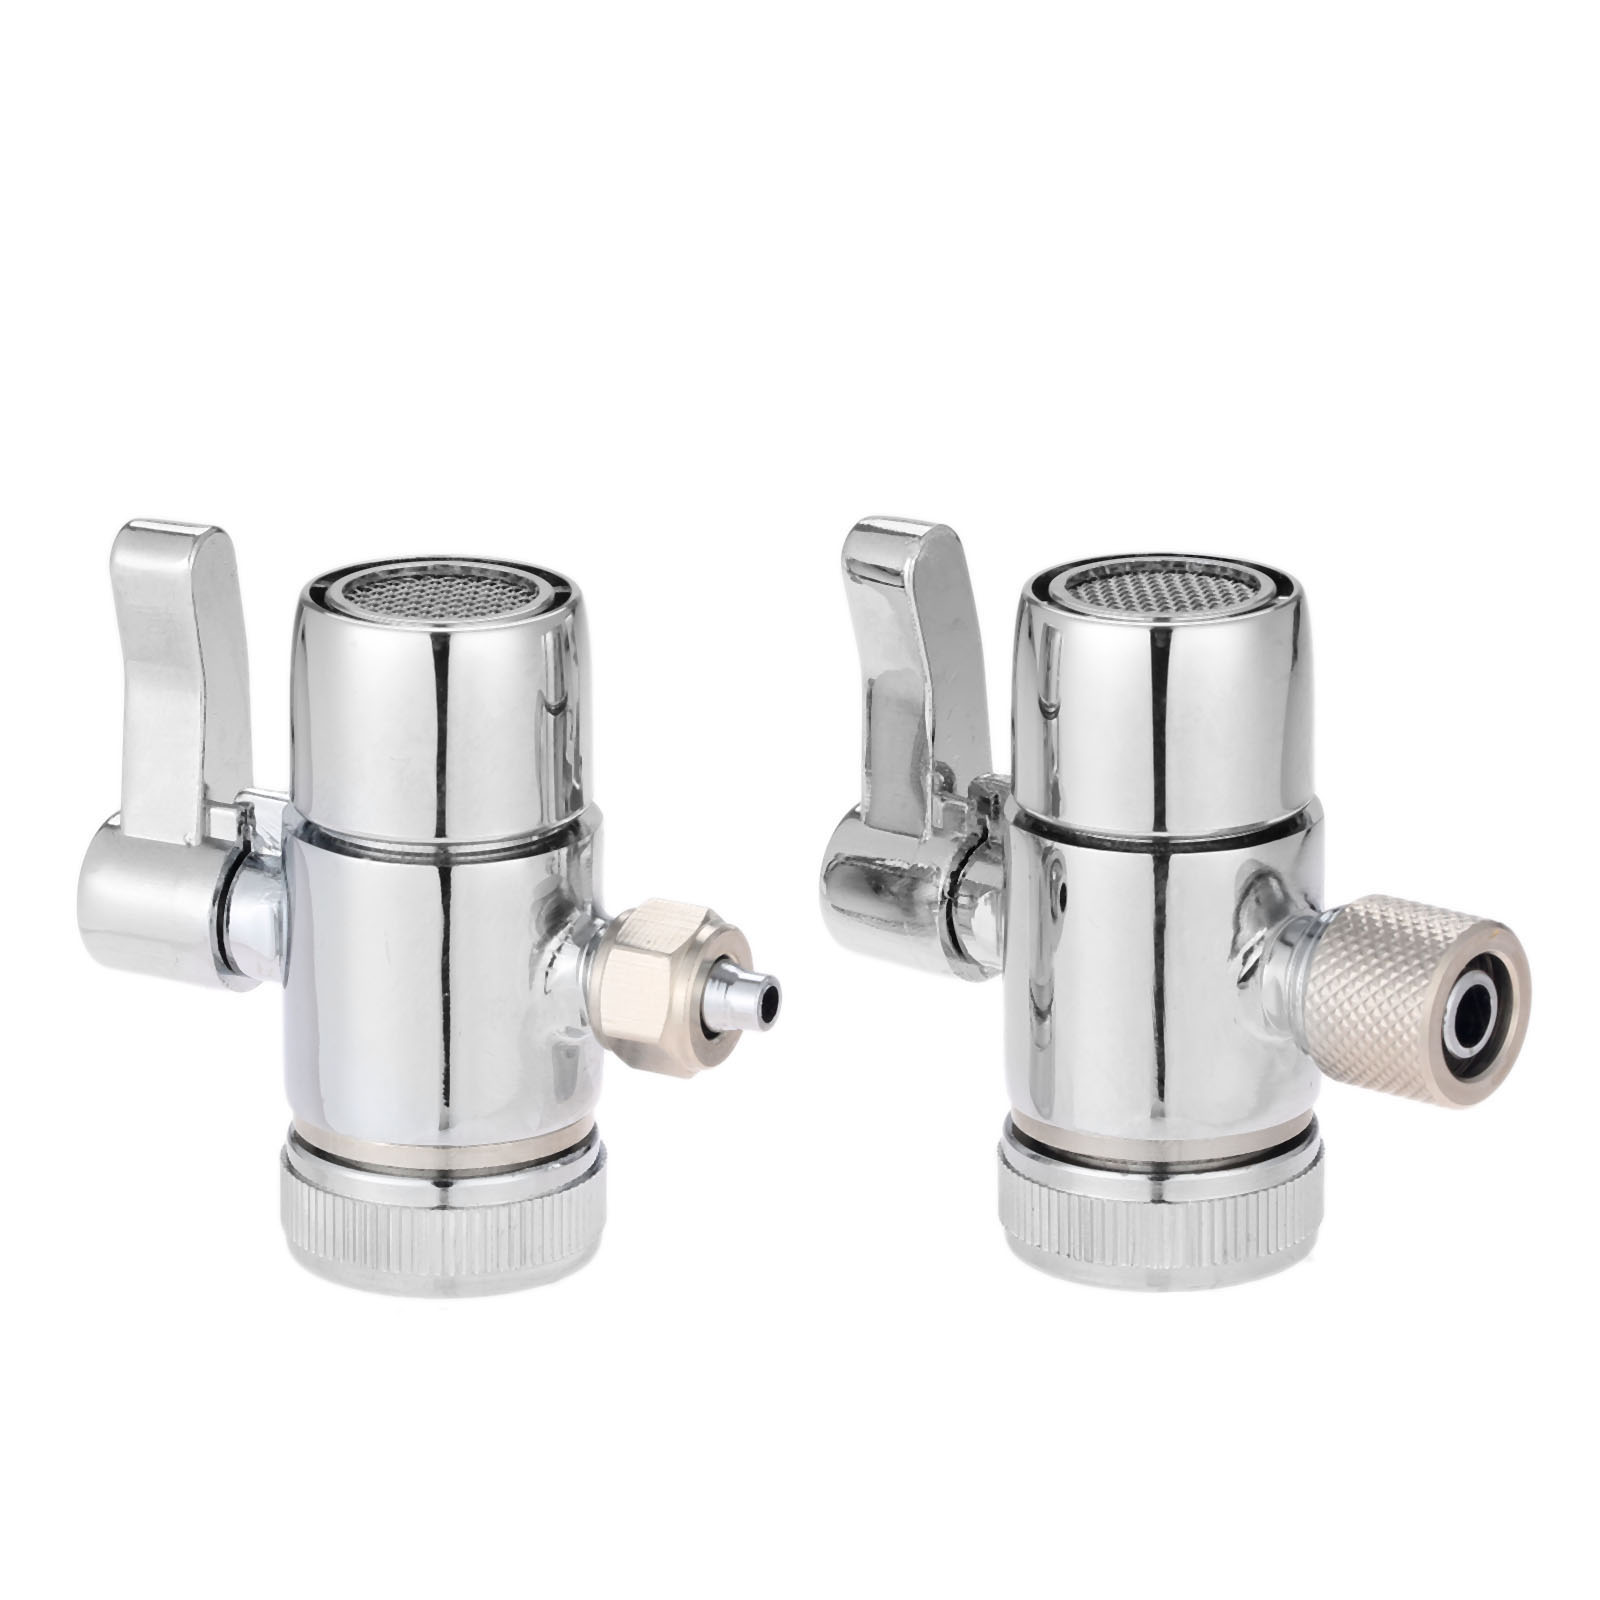 1Pc Faucet Adapter Diverter Valve Counter Top Water Filter 1/4 Inch 3/8 Inch Tube Connector For Ro Water Purifier System